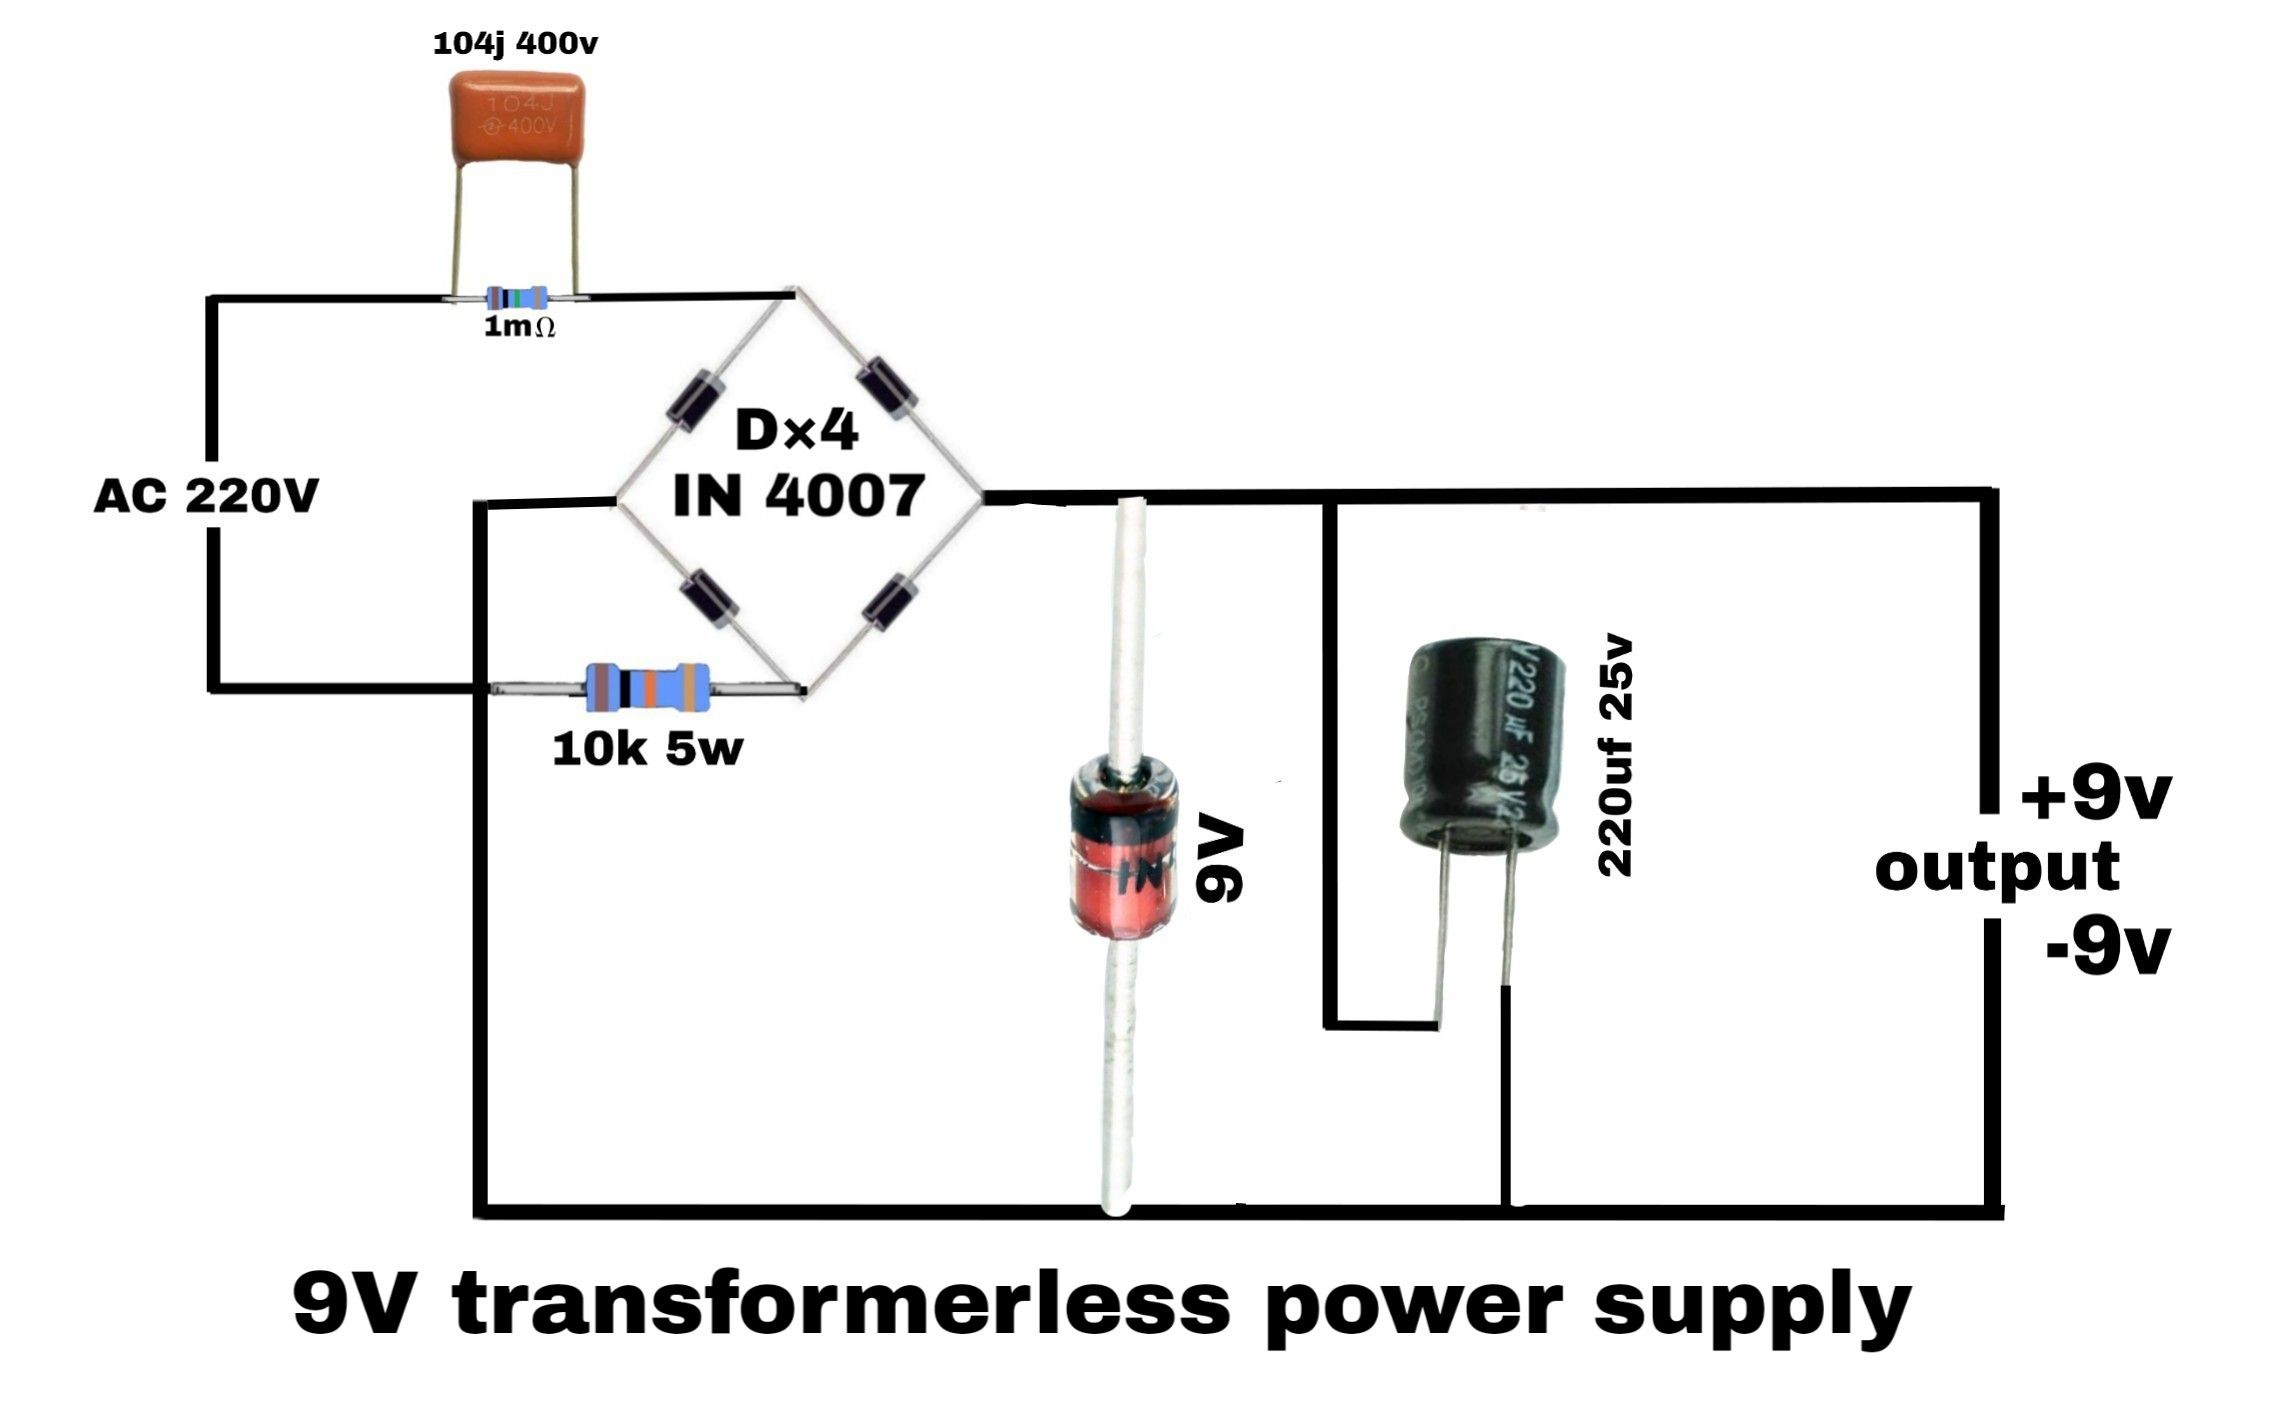 medium resolution of ac 220v to dc 9v transformerless power supply electronics circuit circuit diagram moreover transformerless power supply circuit diagram